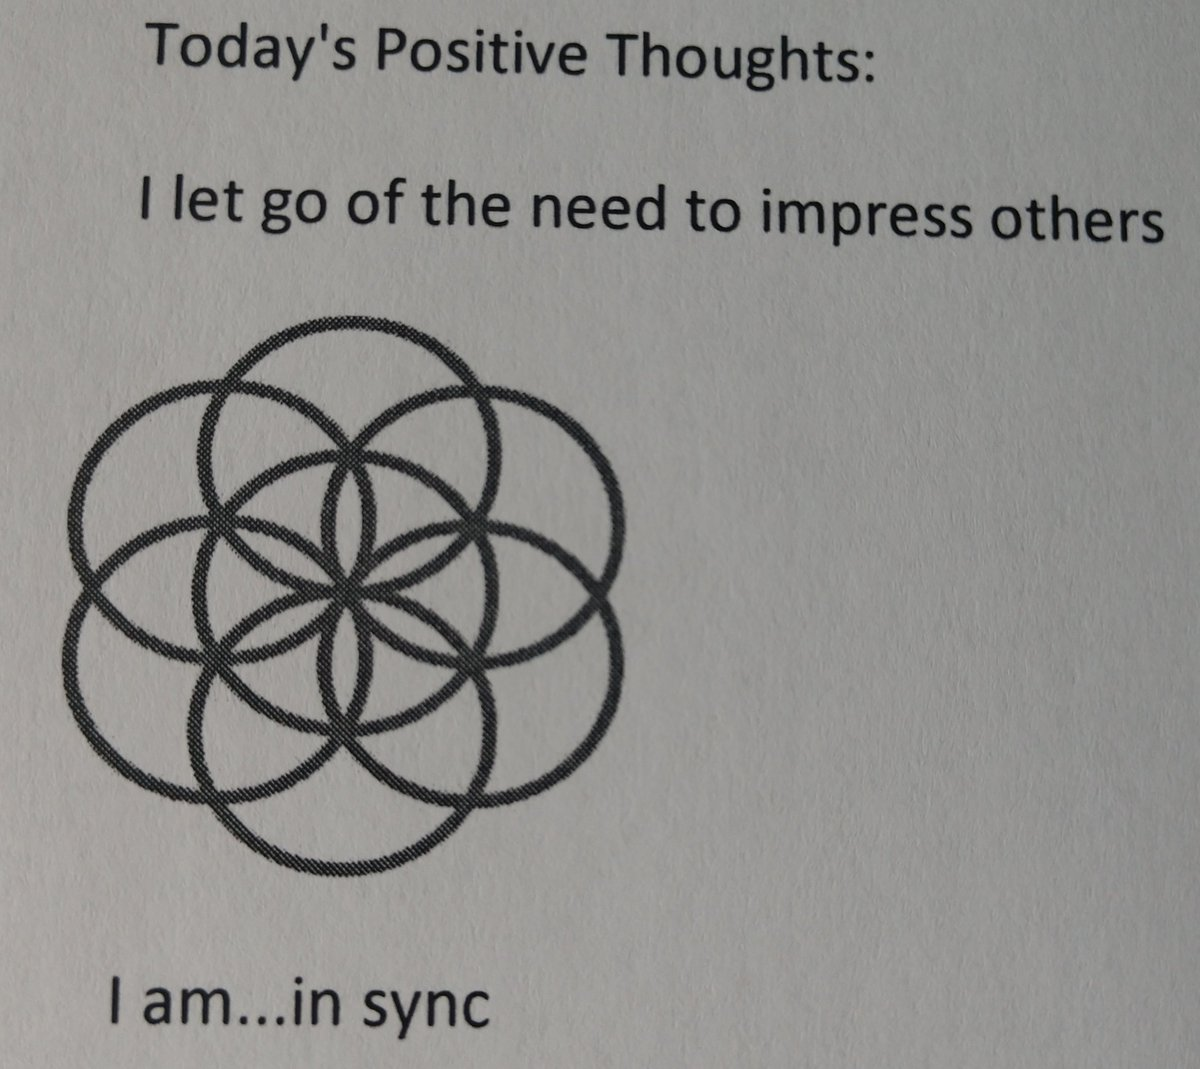 test Twitter Media - Today's Positive Thoughts: I let go of the need to impress others and I am...in sync. #affirmation https://t.co/SxcDF6cHfb